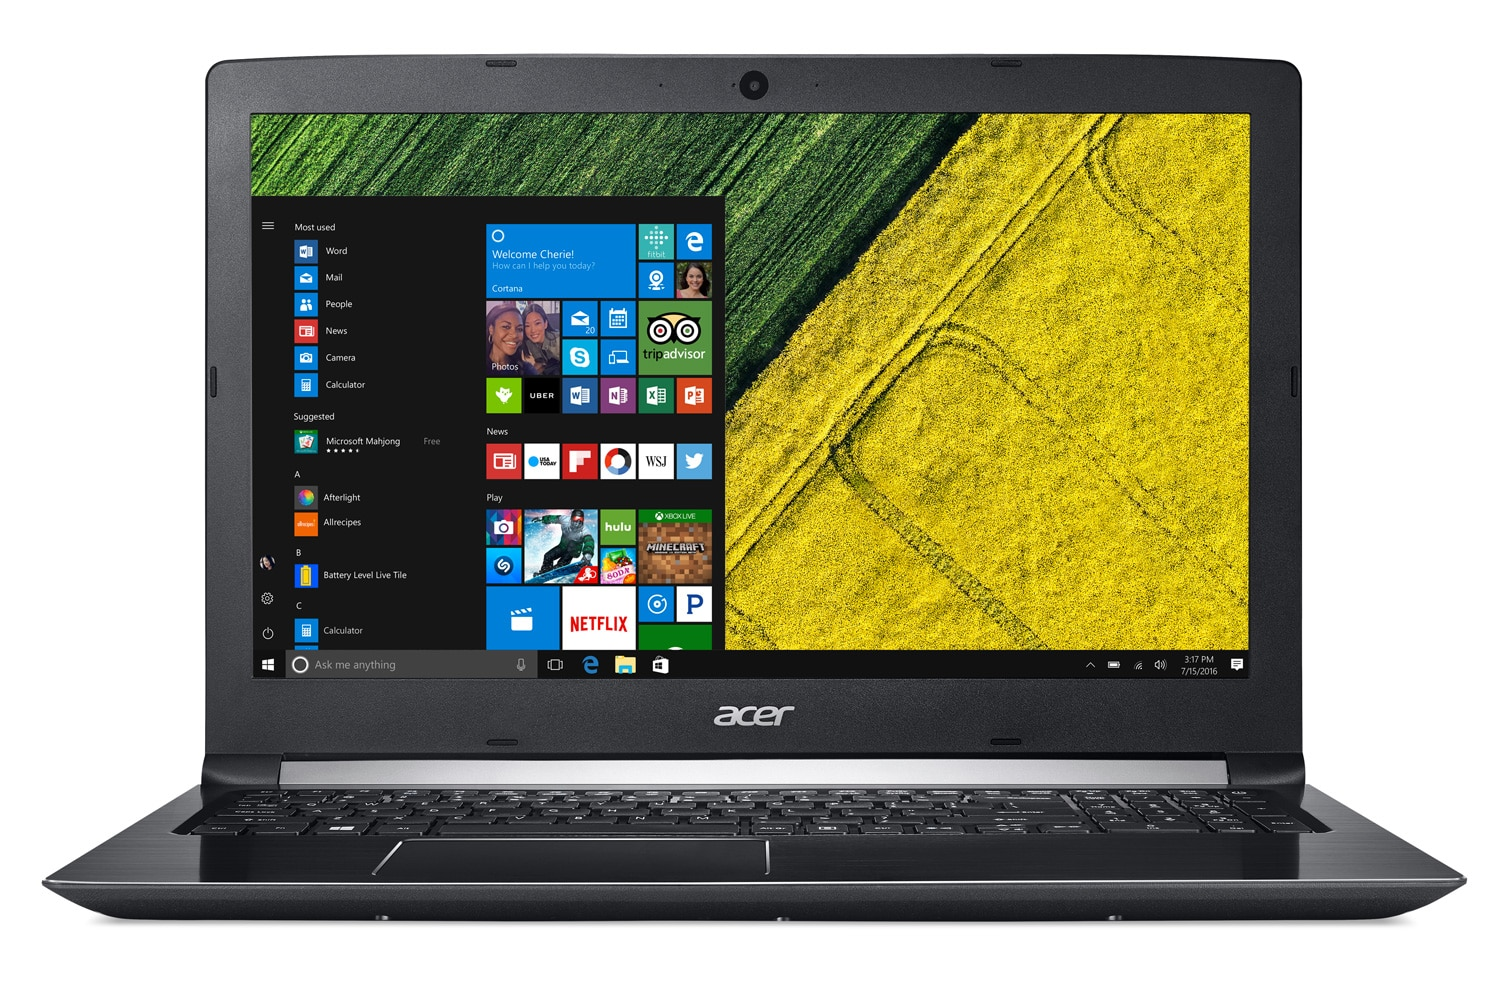 Acer Aspire A515-51-55BQ à 699€, PC portable 15 pouces IPS Full mat SSD i5 Kaby